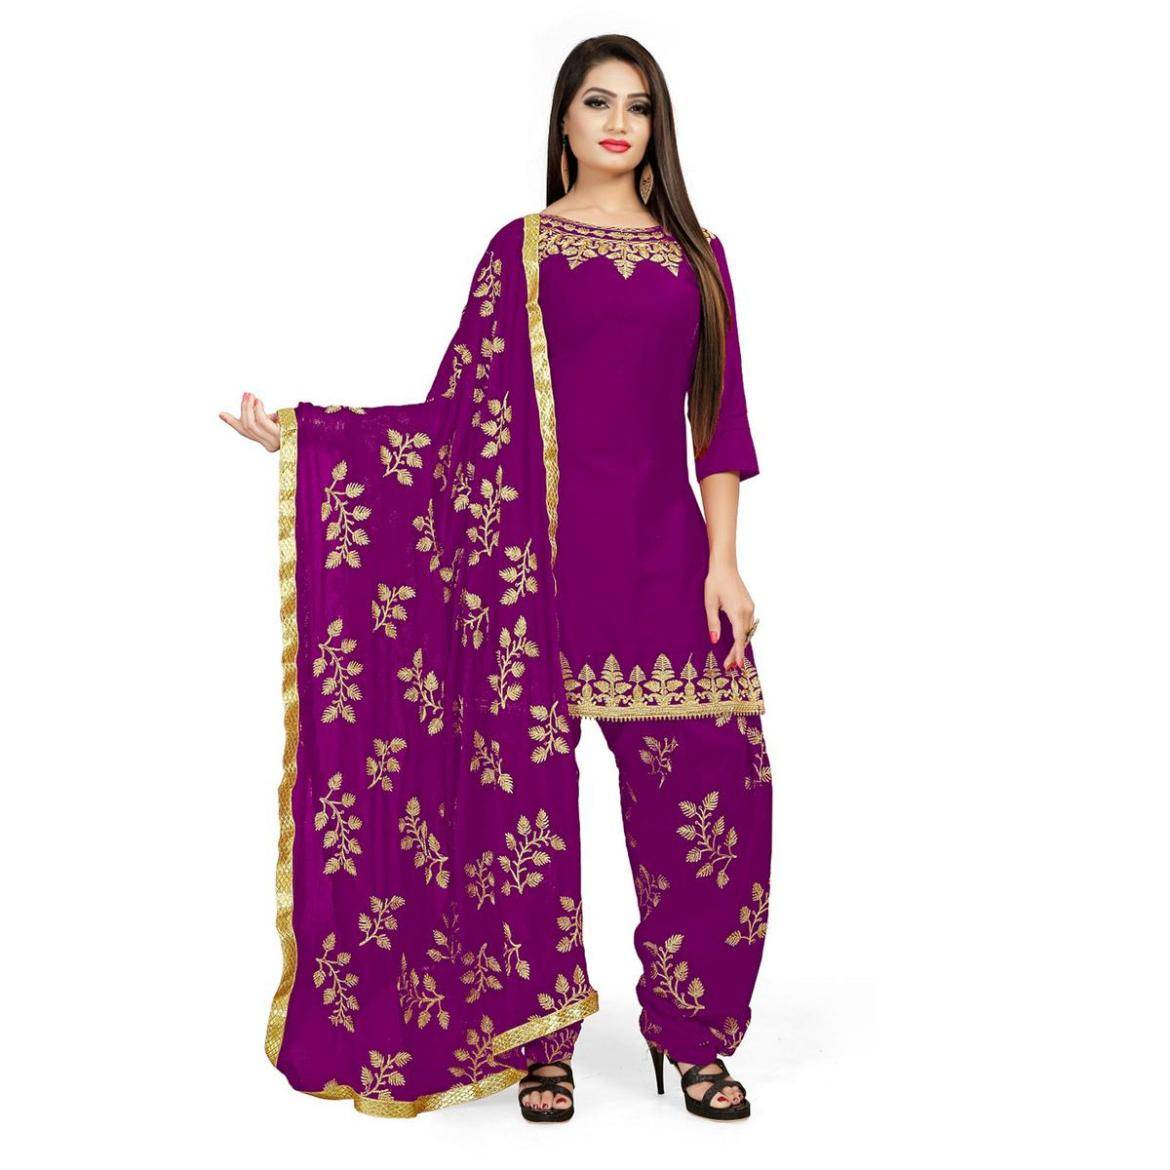 IRIS - Purple Colored Party Wear Embroidered Cotton Patiyala Style Dress Material